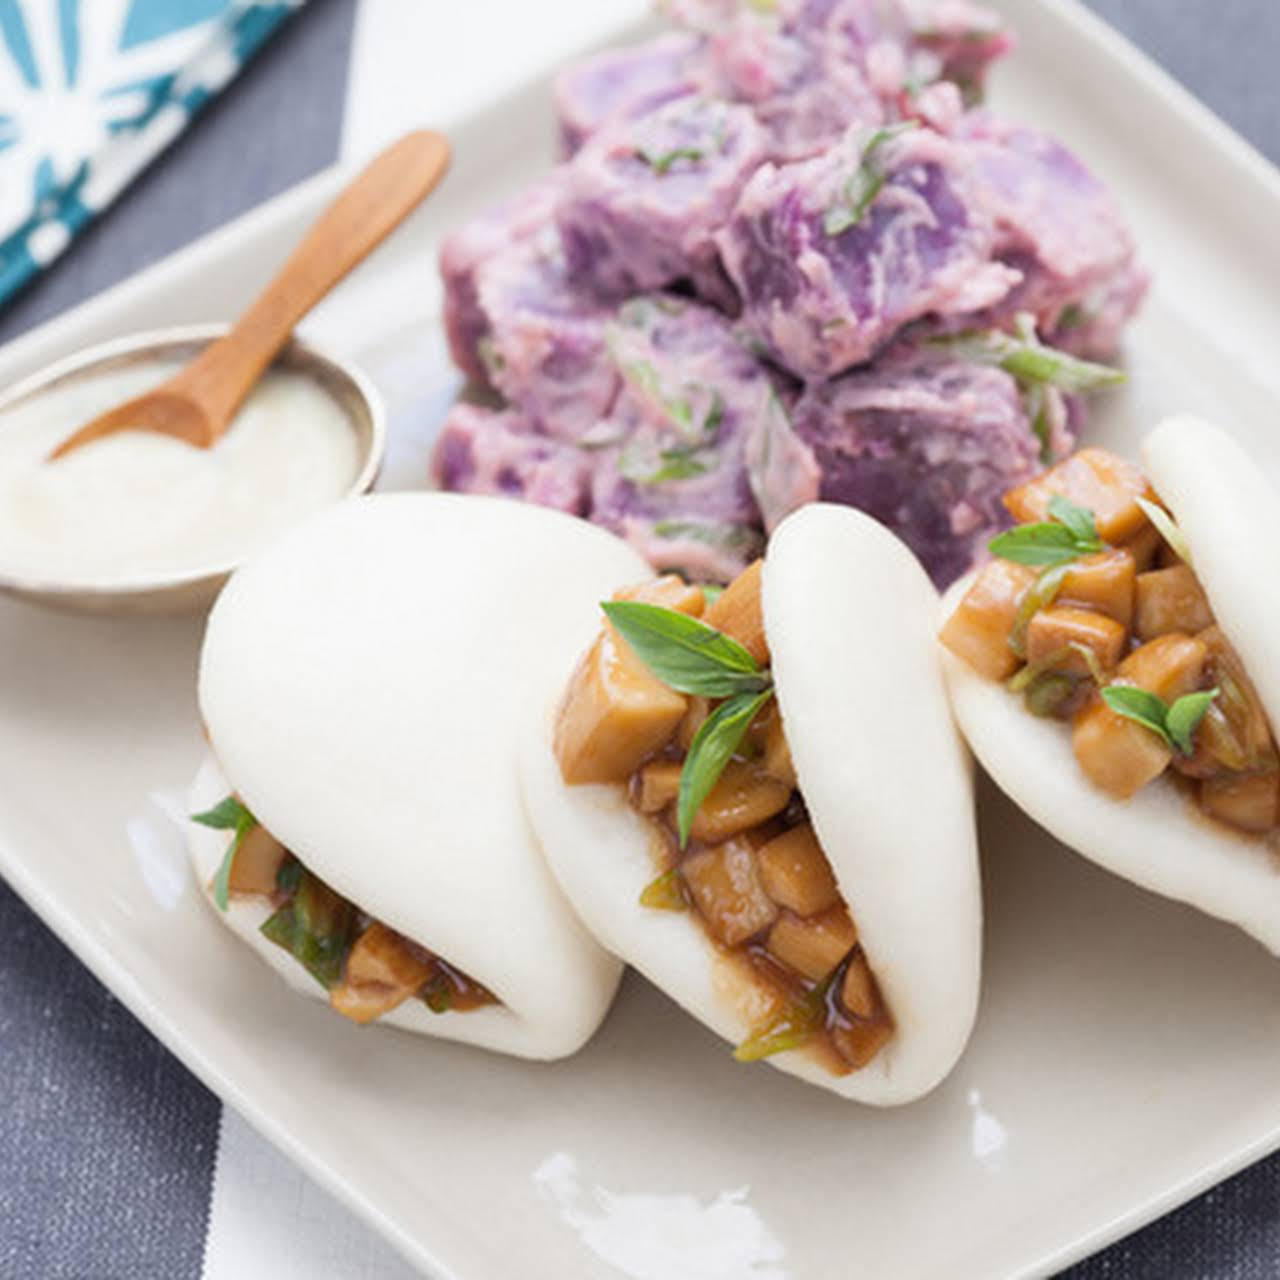 King Trumpet Mushroom Steam Buns with Miso Butter & Japanese Sweet Potato Salad